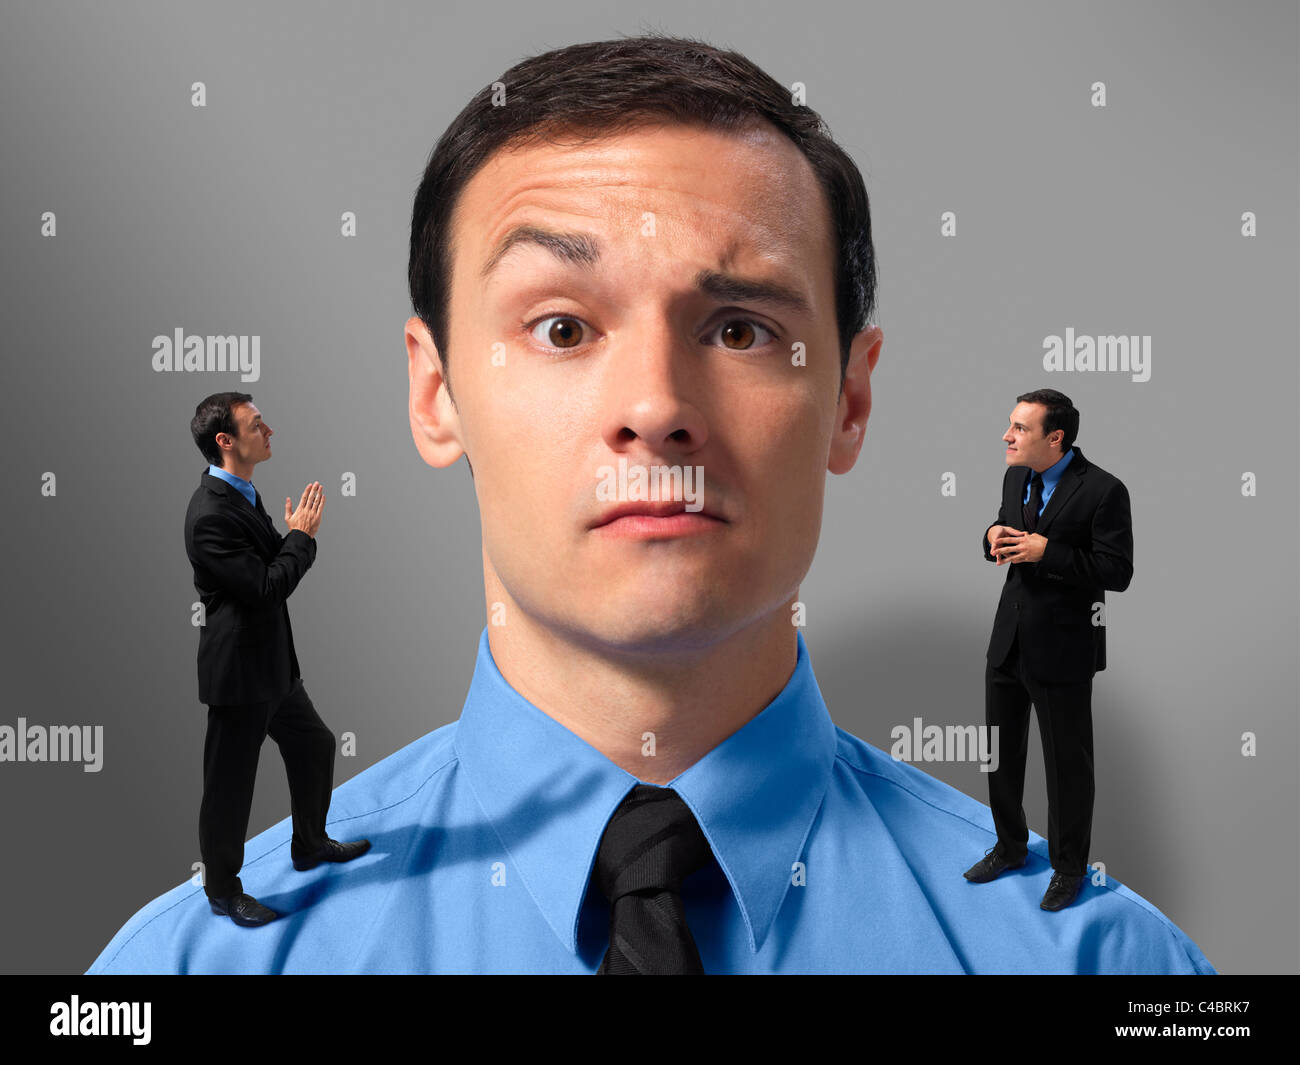 Businessman making decision symbolized by angel and devil versions of himself on his shoulders - Stock Image